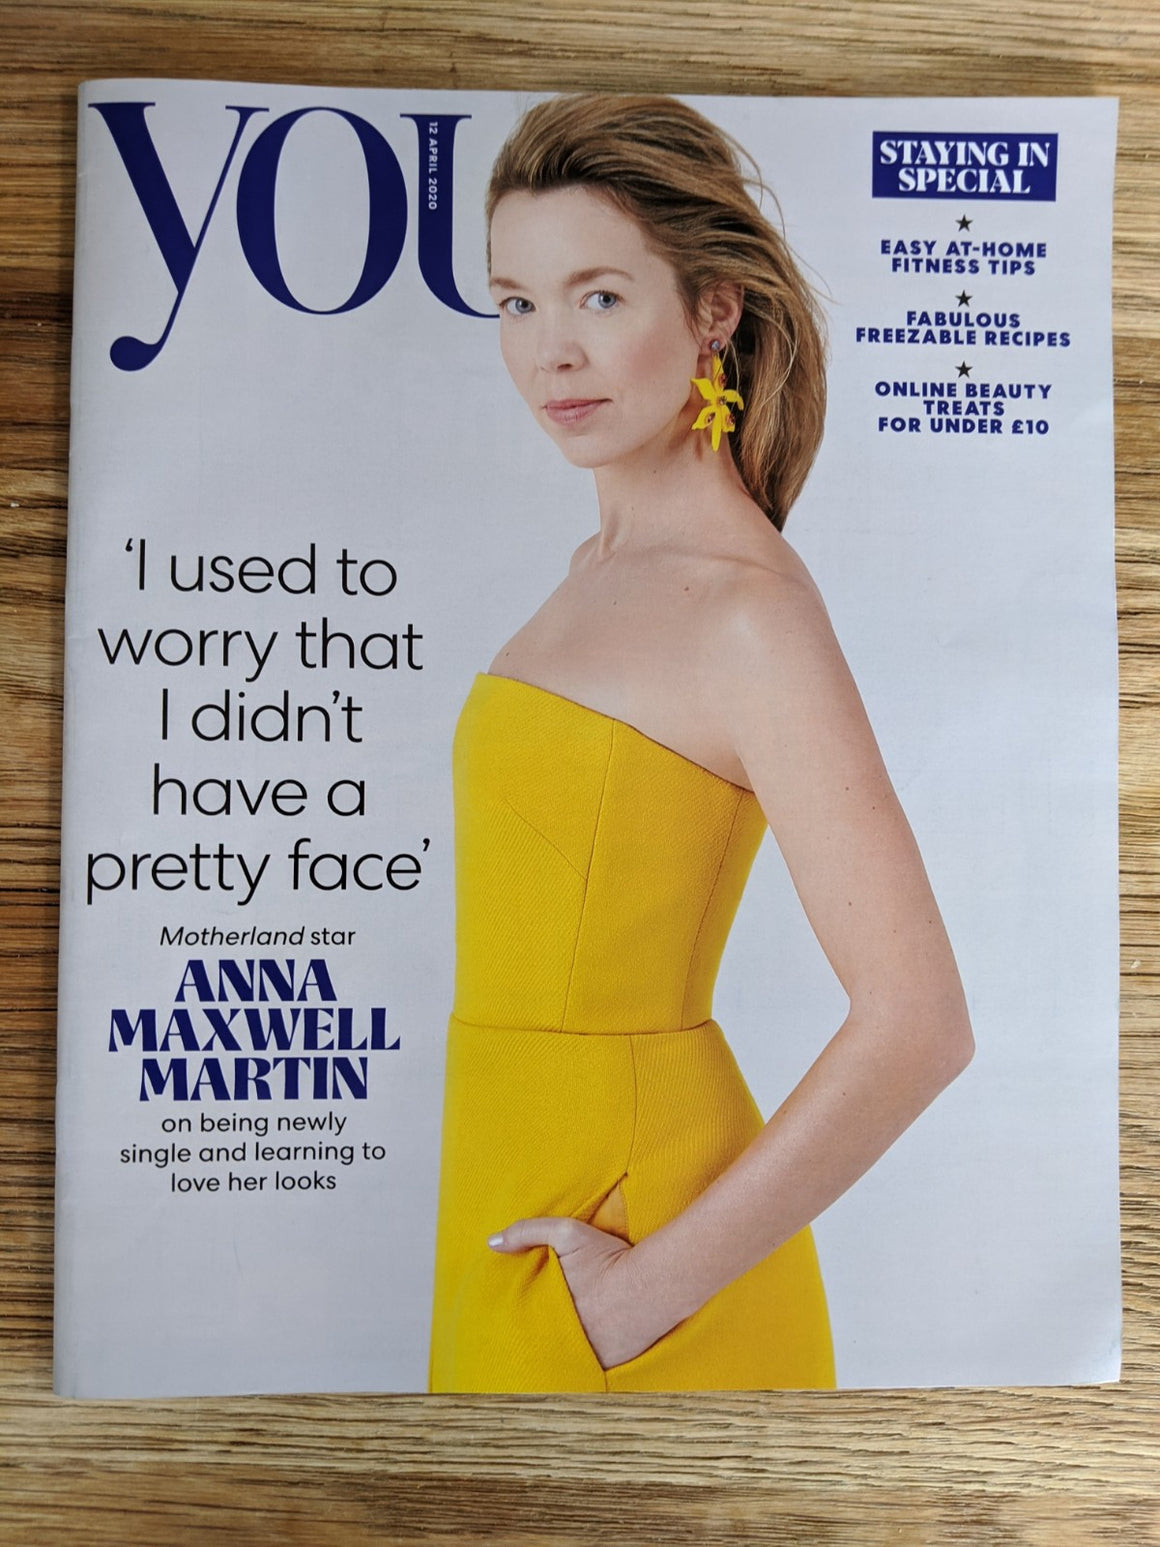 UK YOU Magazine April 2020: ANNA MAXWELL MARTIN COVER FEATURE Good Omens